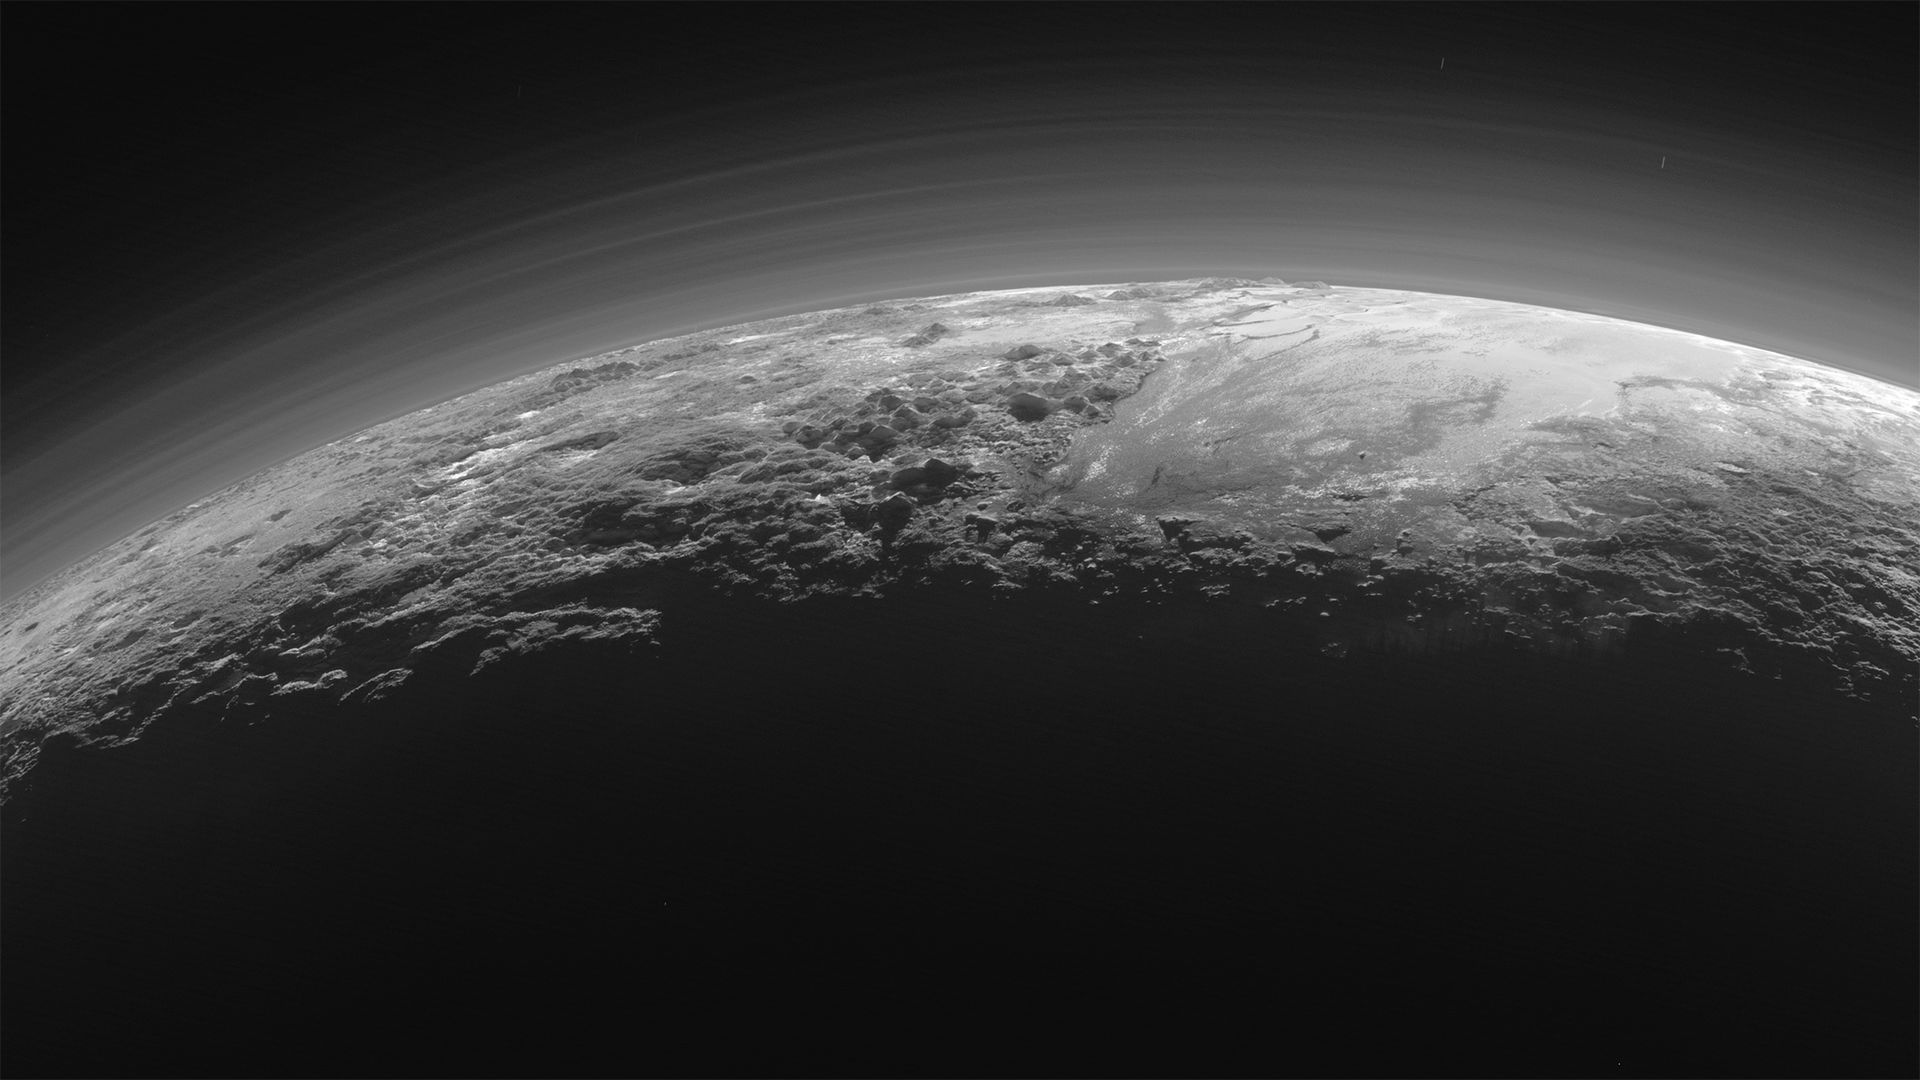 Wired sunset on pluto